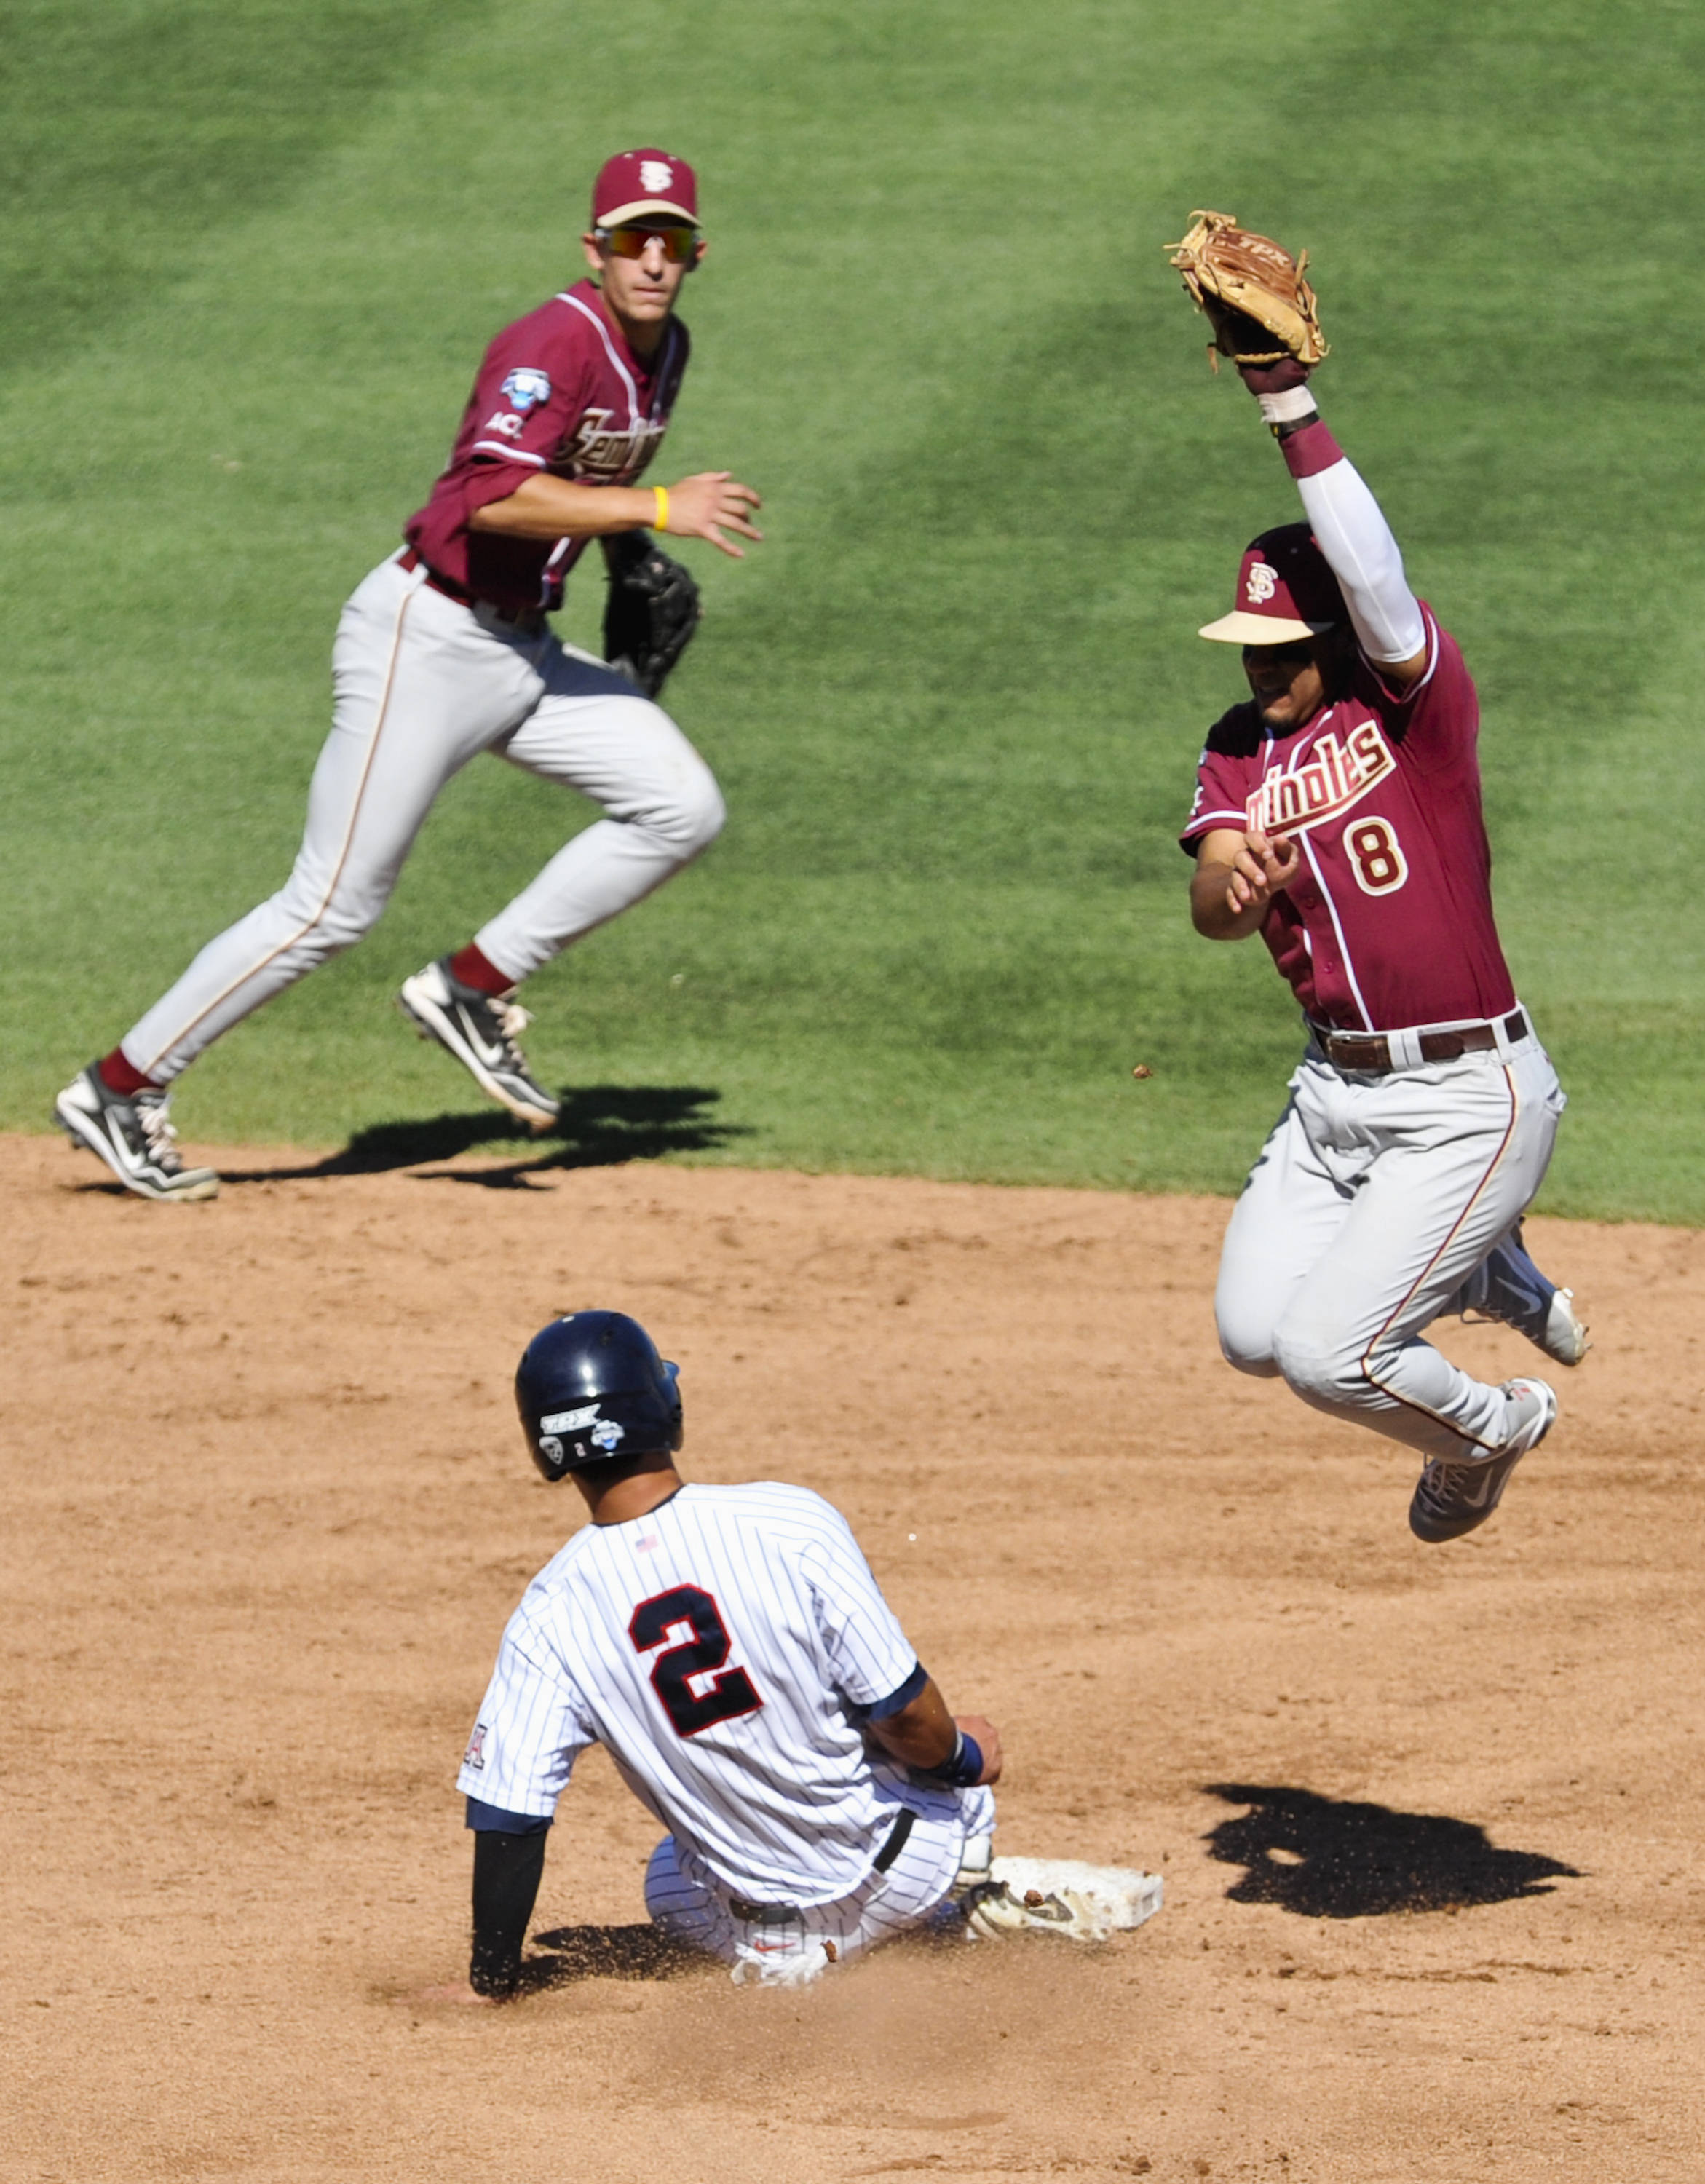 Arizona's Robert Refsnyder (2) steals second base as Florida State second baseman Devon Travis leaps for the ball, and shortstop Justin Gonzalez runs by. (AP Photo/Dave Weaver)